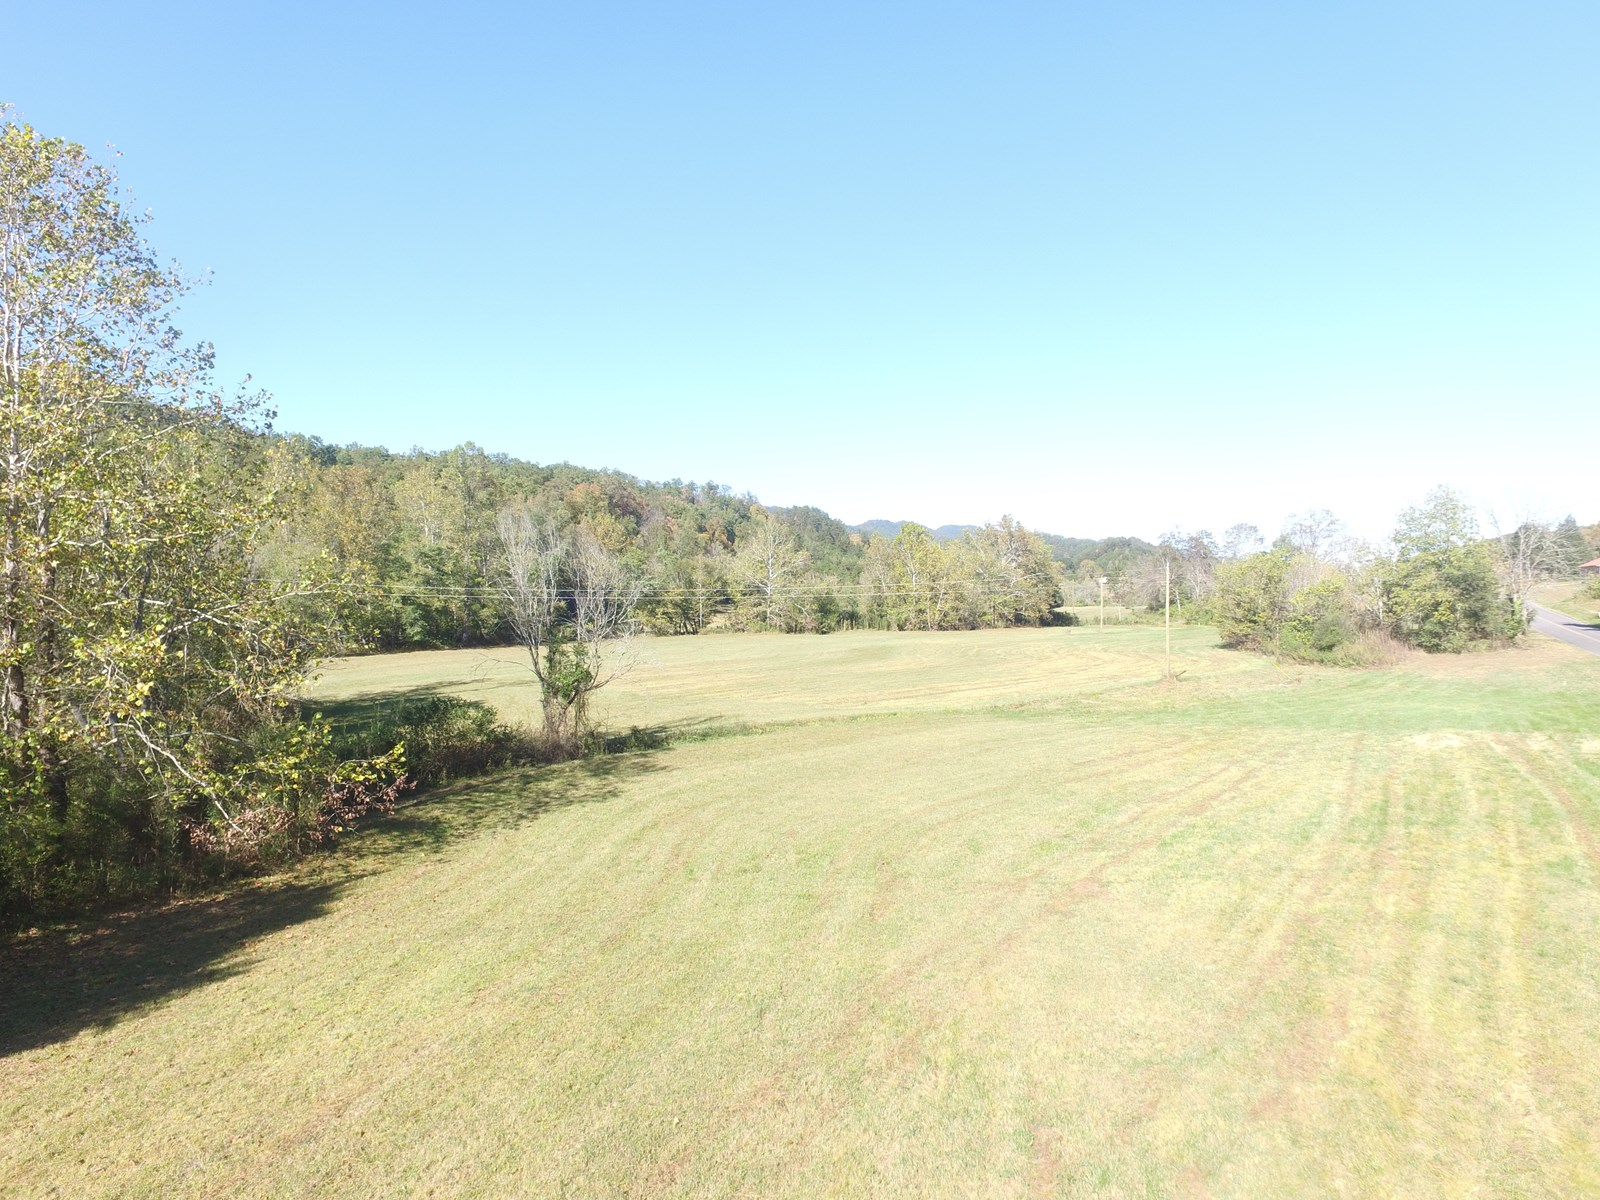 East Tennessee Land for Sale Rogersville TN with Small Cabin